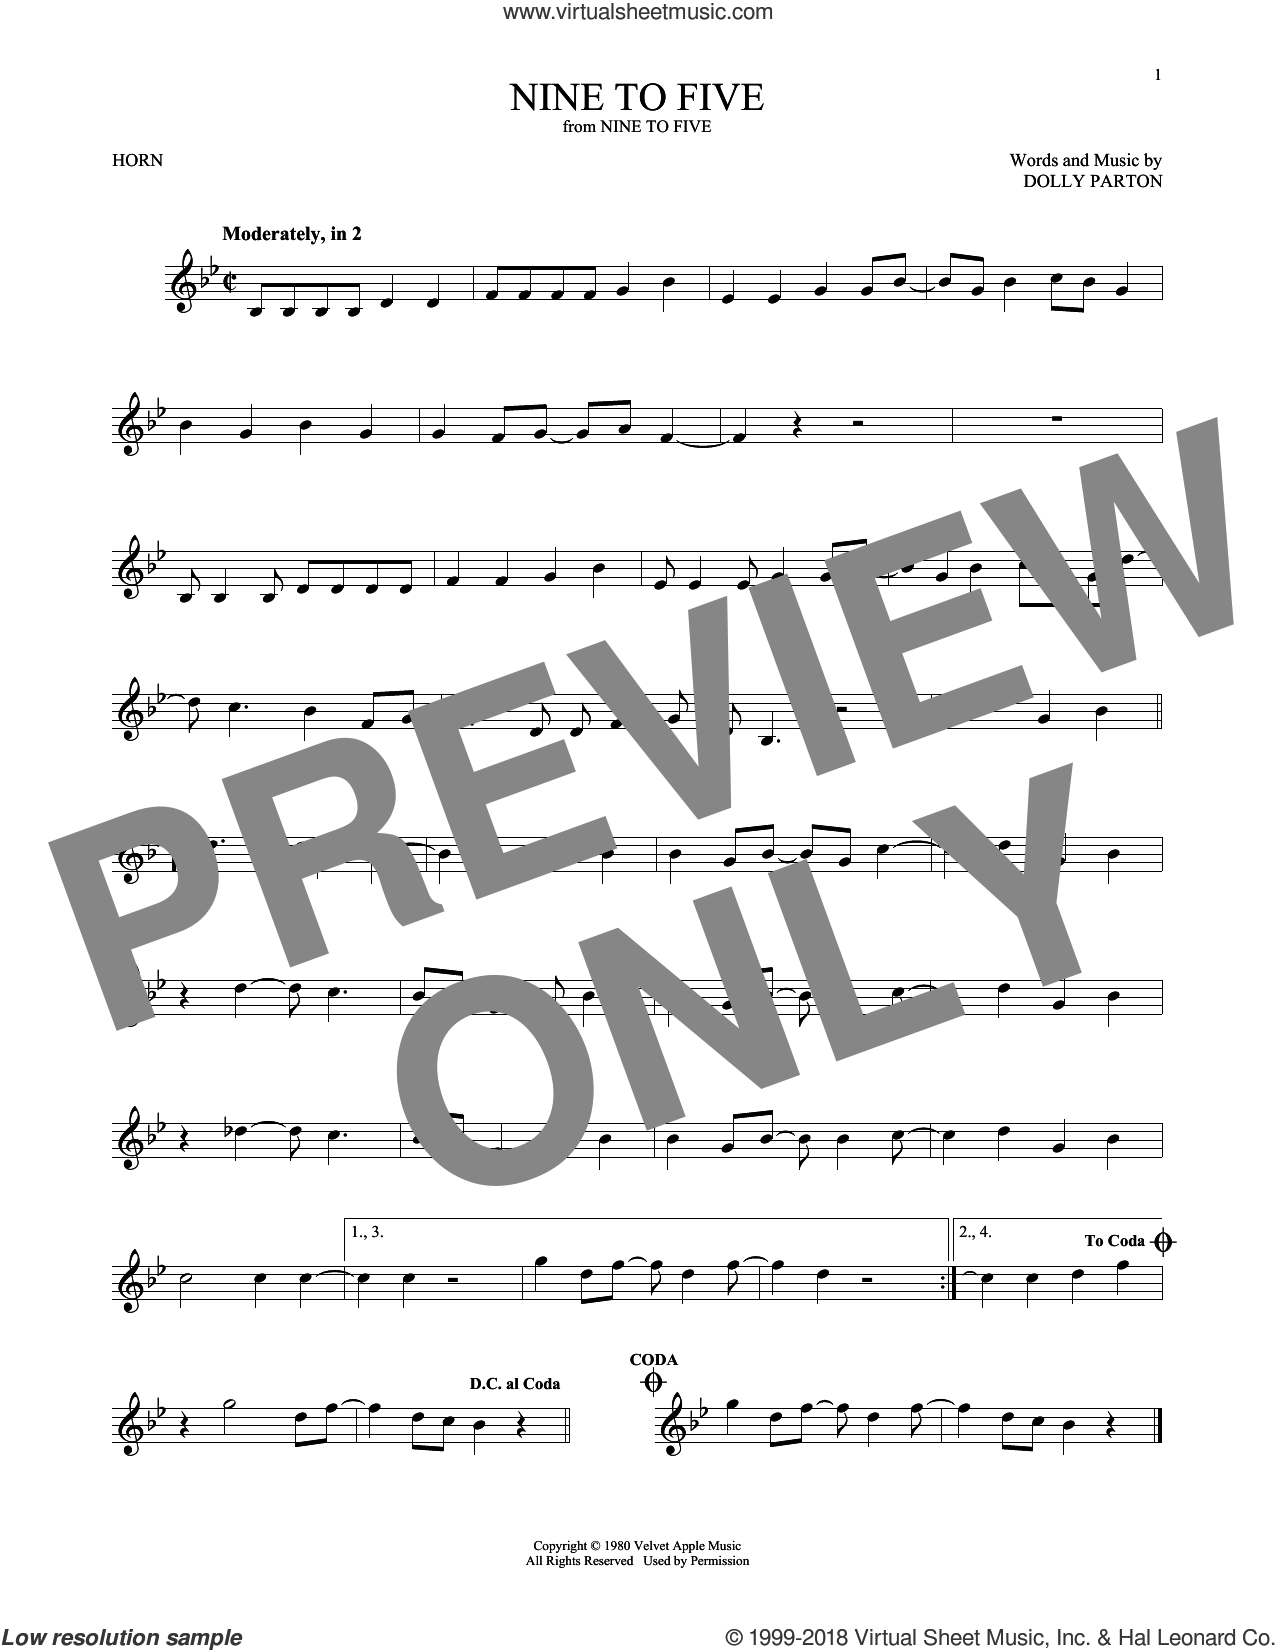 Nine To Five sheet music for horn solo by Dolly Parton, intermediate skill level